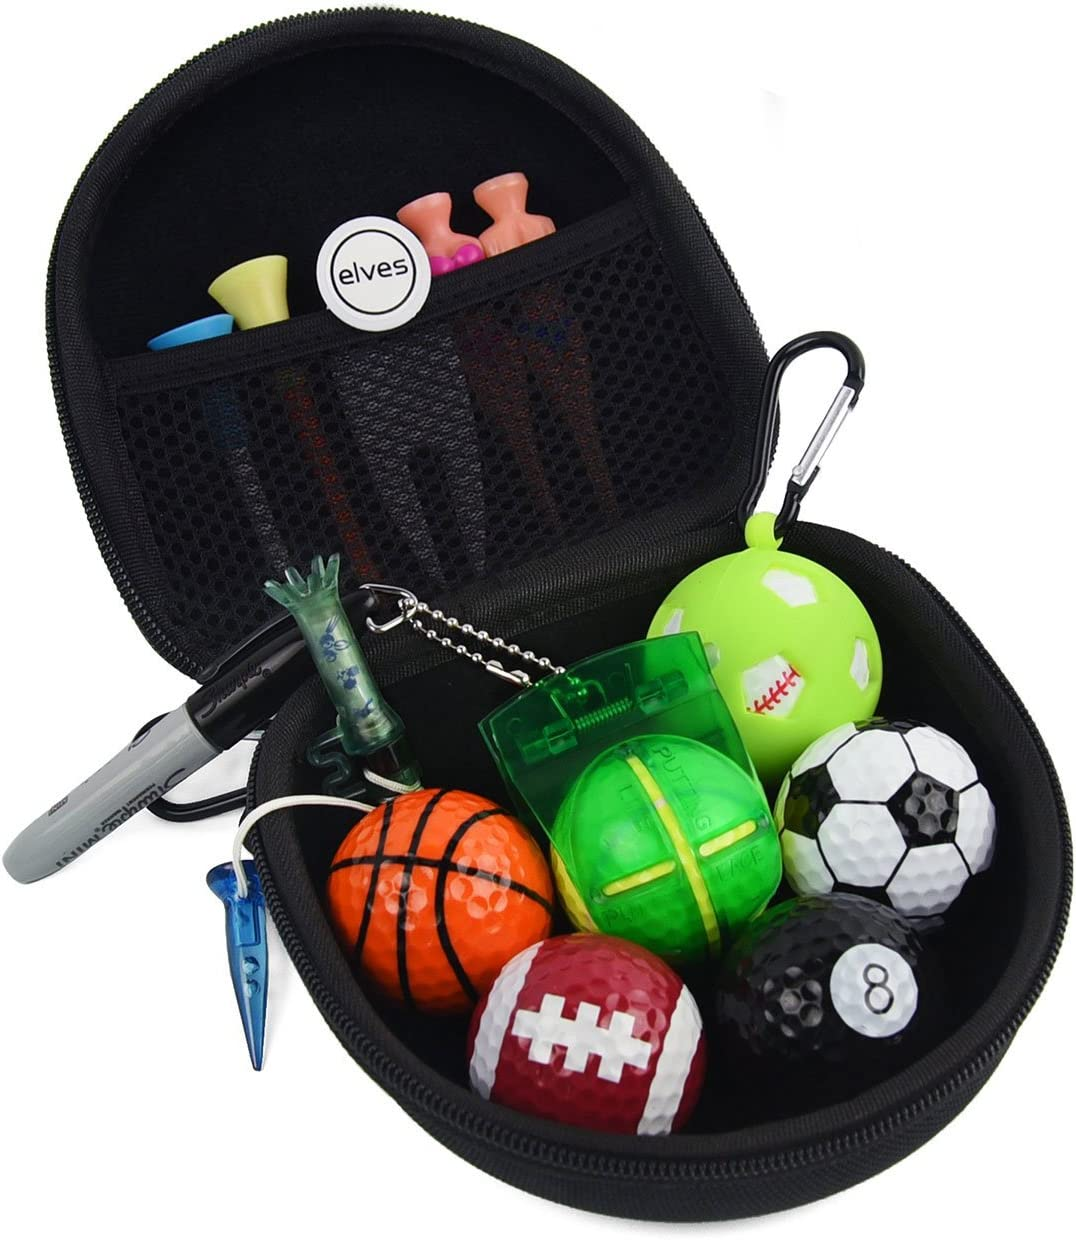 Amazon Com Elves Sports Themed Golf Balls Gift Set With Golf Ball And Golf Accessories Golf Balls Kit With All Necessary Accessories Tools Sports Outdoors